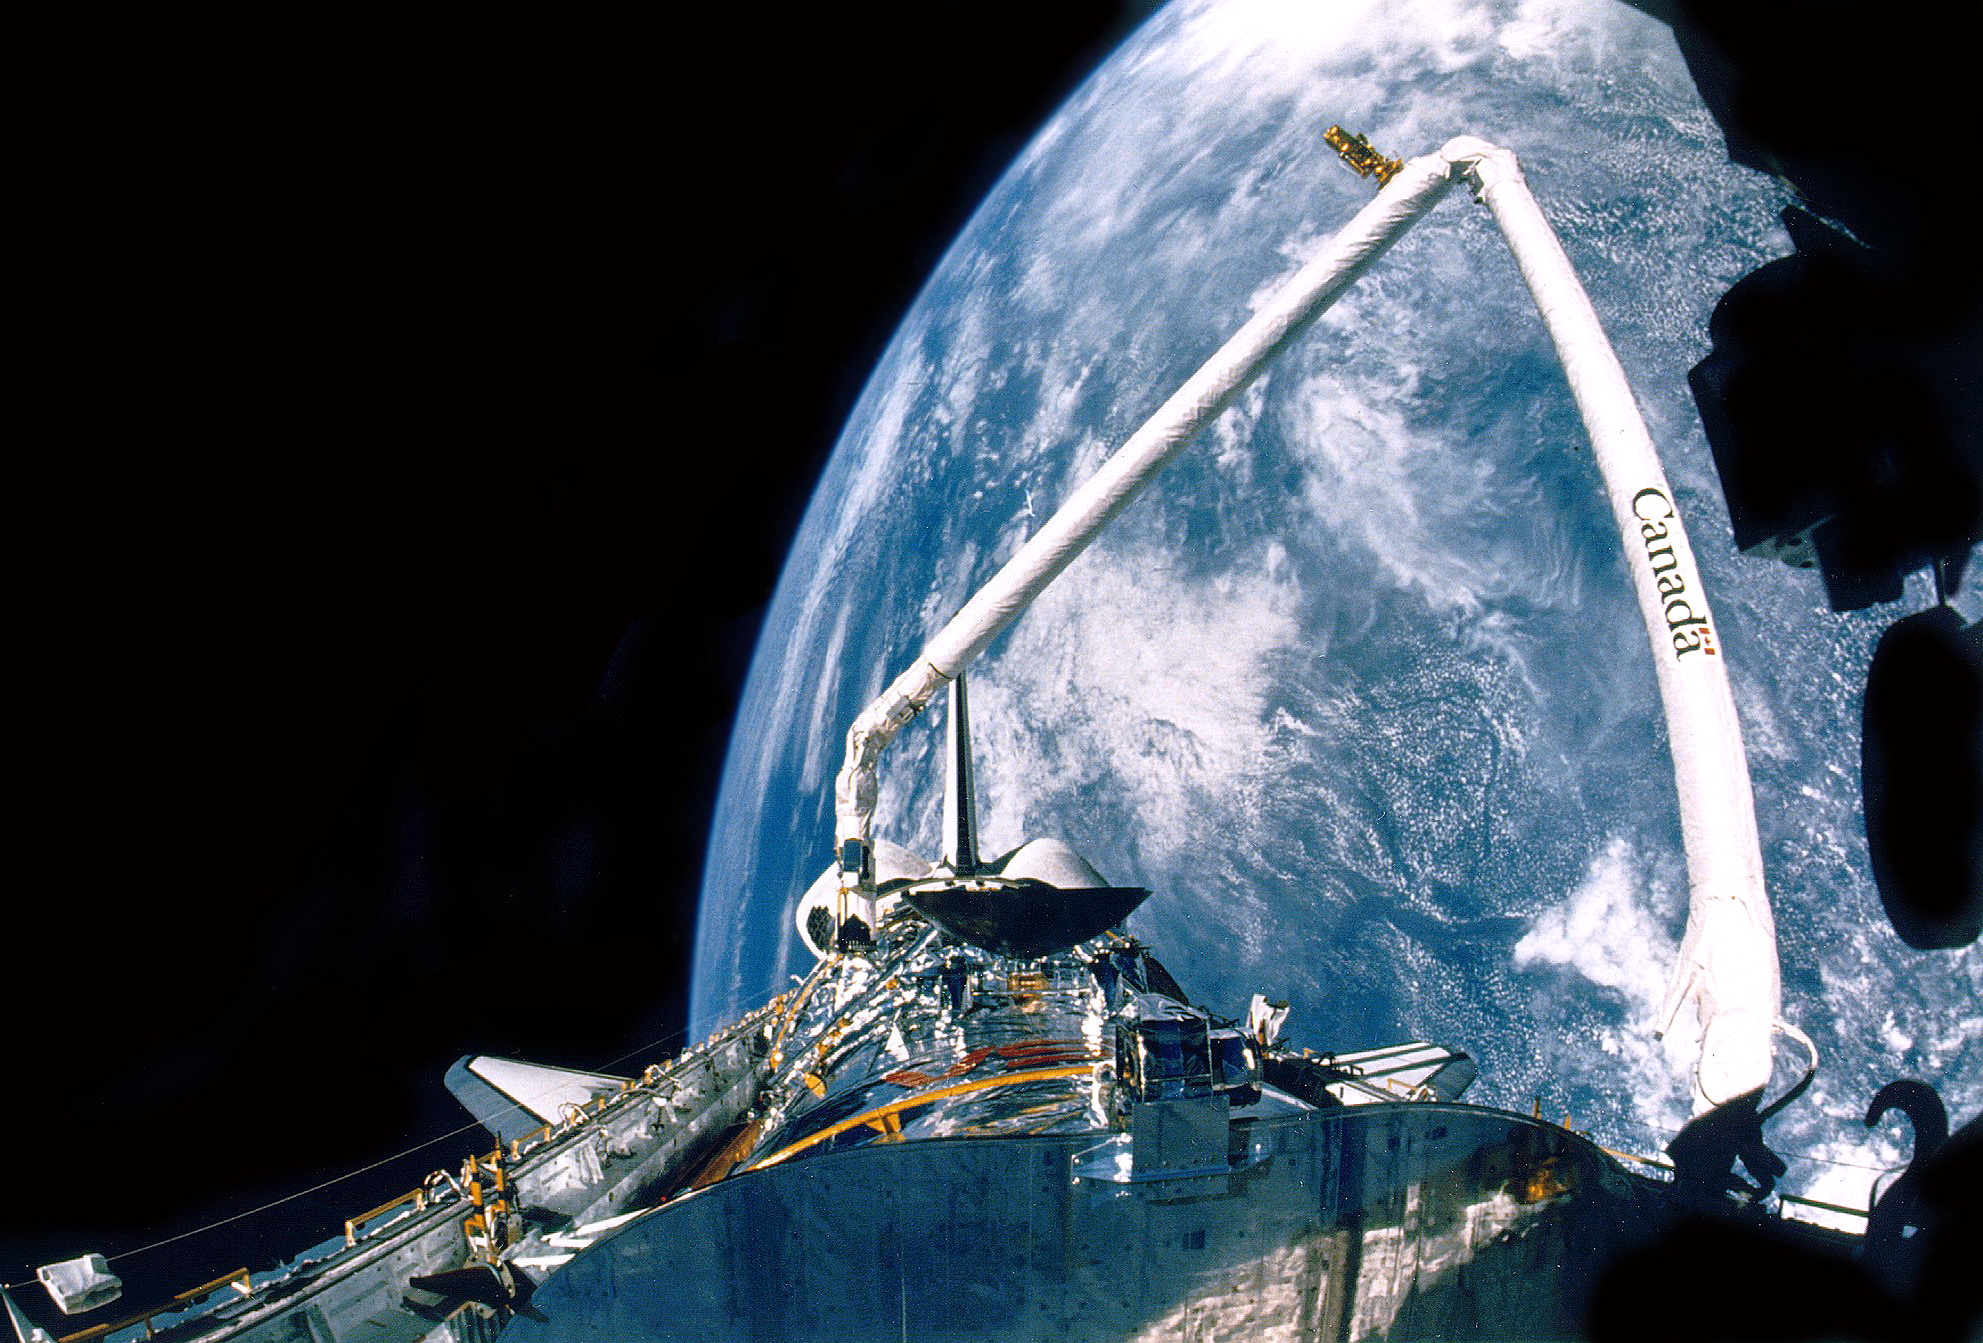 HST Hubble Space Telescope space shuttle Discovery STS-31 Earth NASA photo posted on SpaceFlight Insider